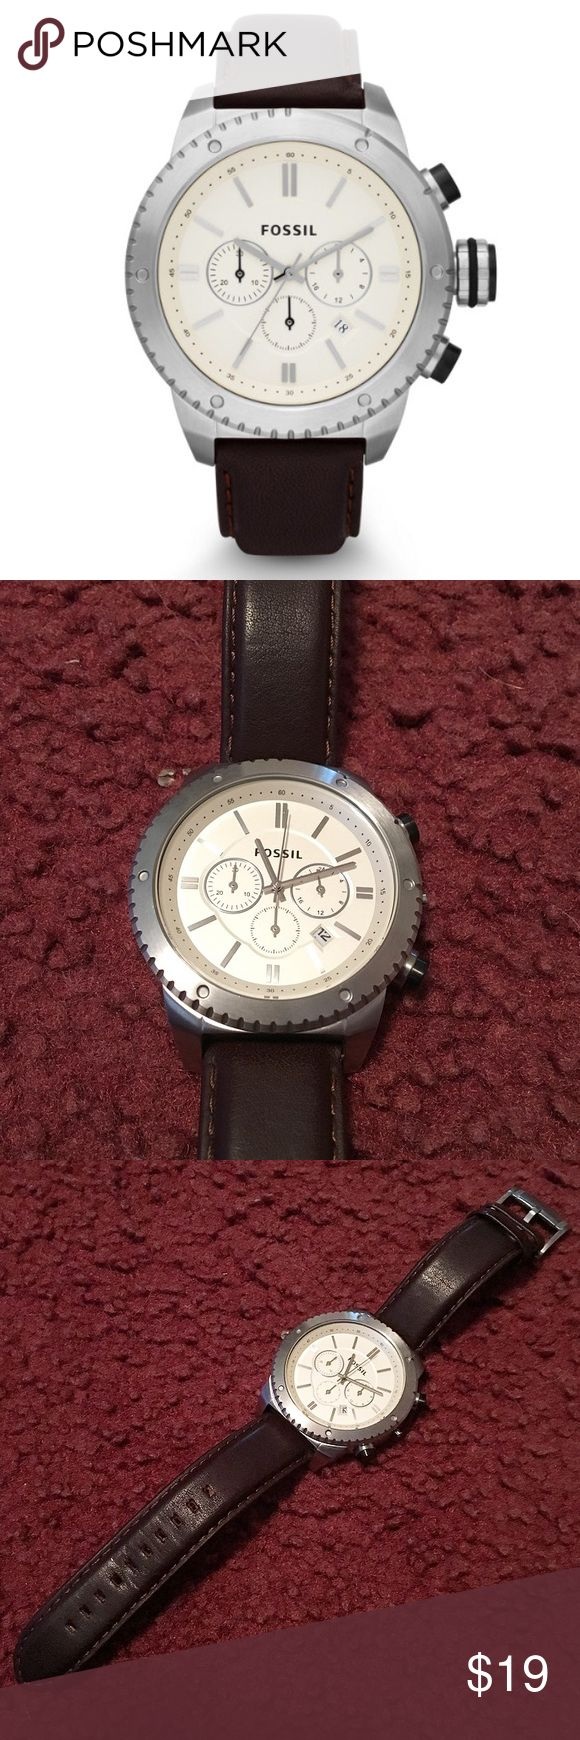 Men's Leather Fossil Watch Men's genuine brown leather Fossil watch with chronograph feature and cream colored face. Silver hardware. Watch has only been warn a few times and is in good condition. Needs new stem - the stem fell off. This can be repaired for free through Fossil! They only charge for shipping! Authentic. No trades! Fossil Accessories Watches